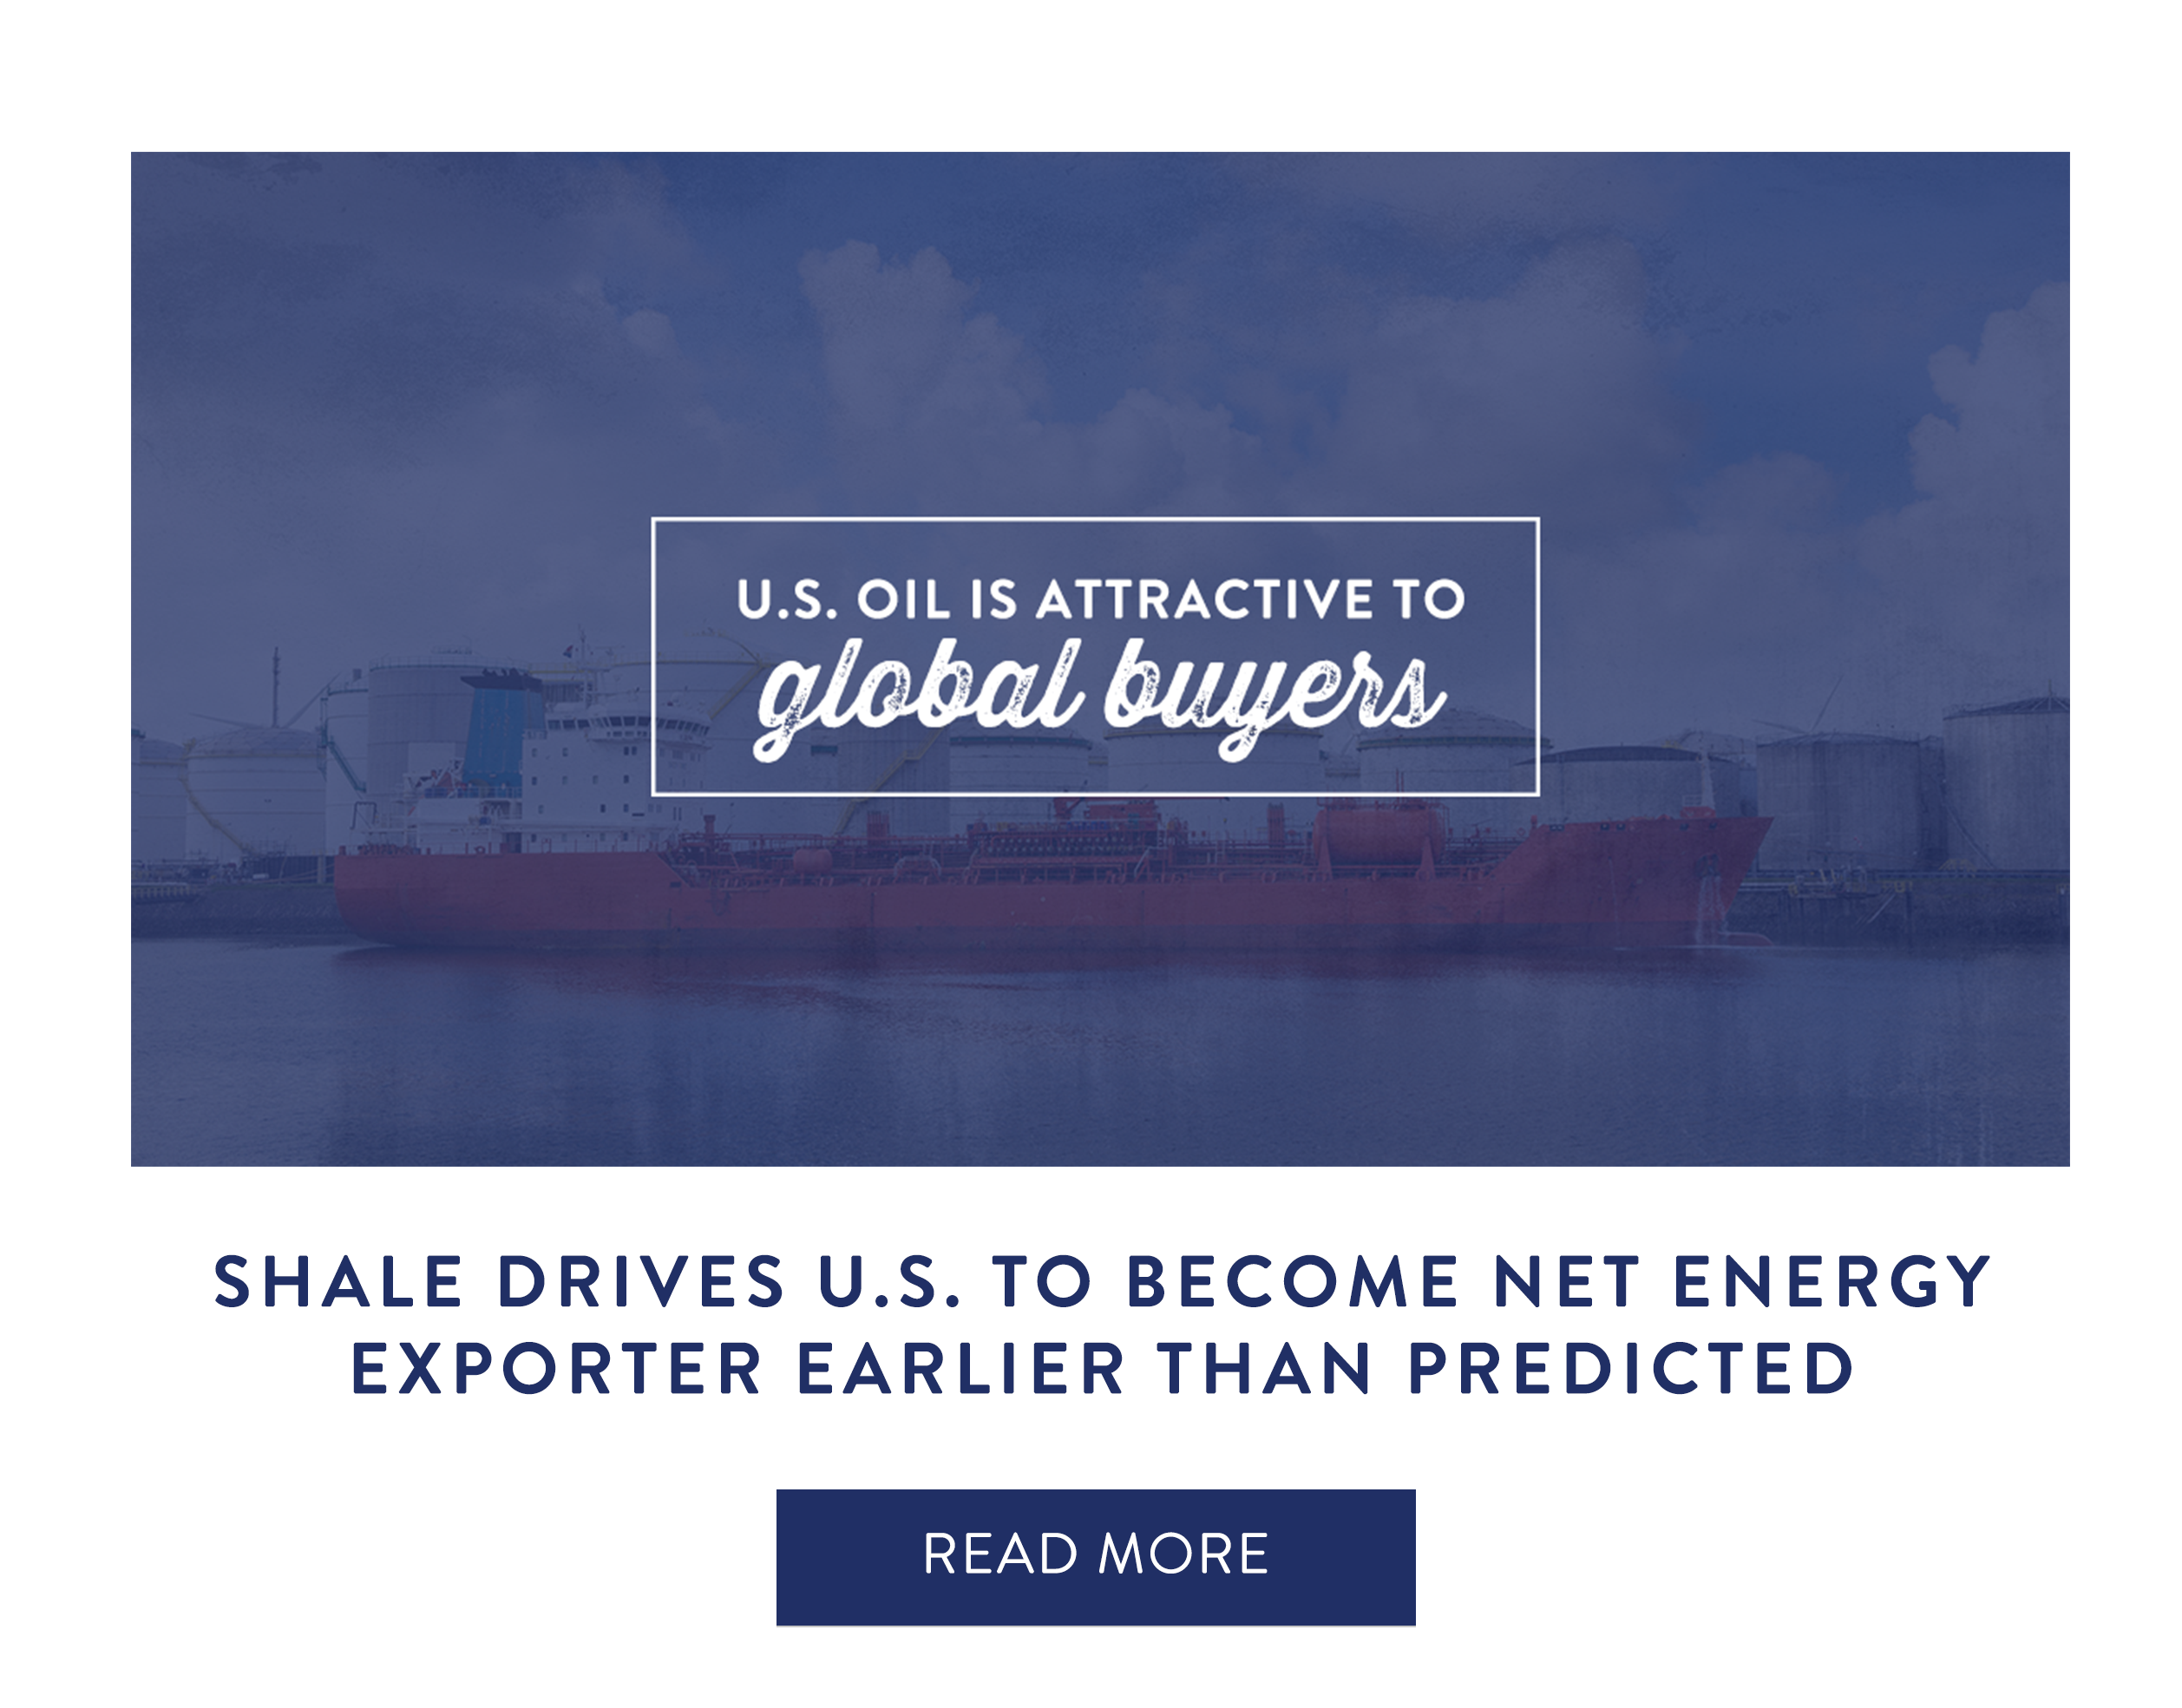 Shale Drives U.S. to Become Net Energy Exporter Earlier than Predicted